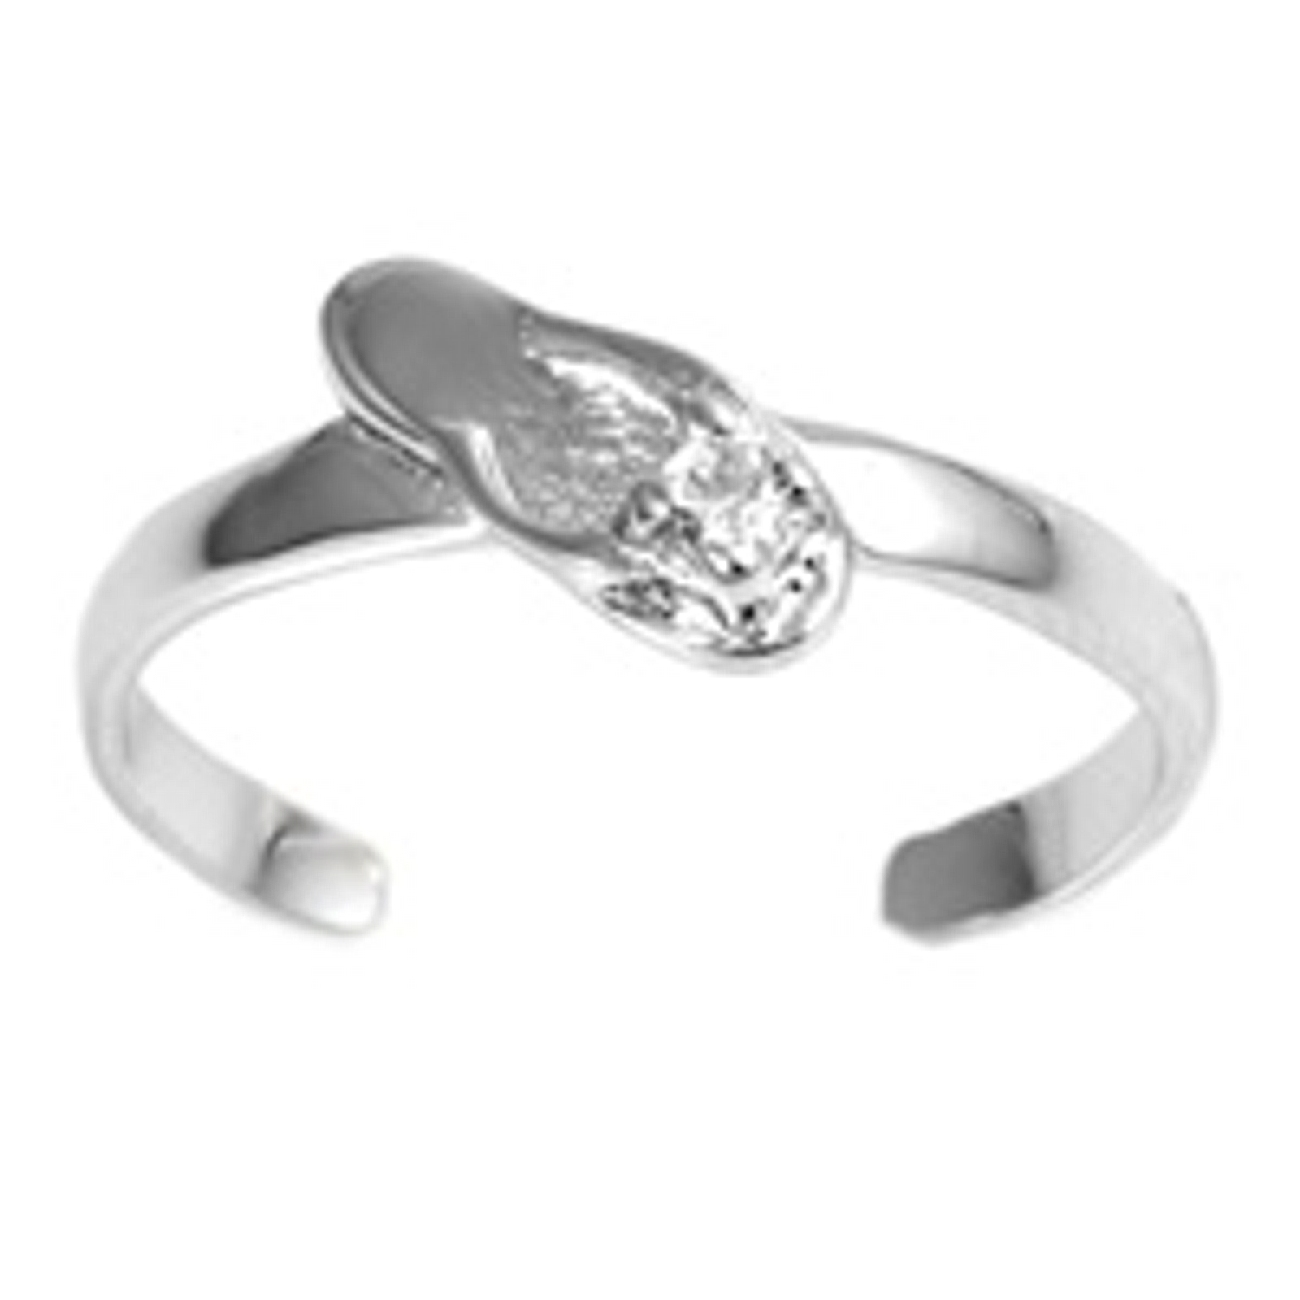 Clear Cubic Zirconia Flip Flop Adjustable Toe Ring